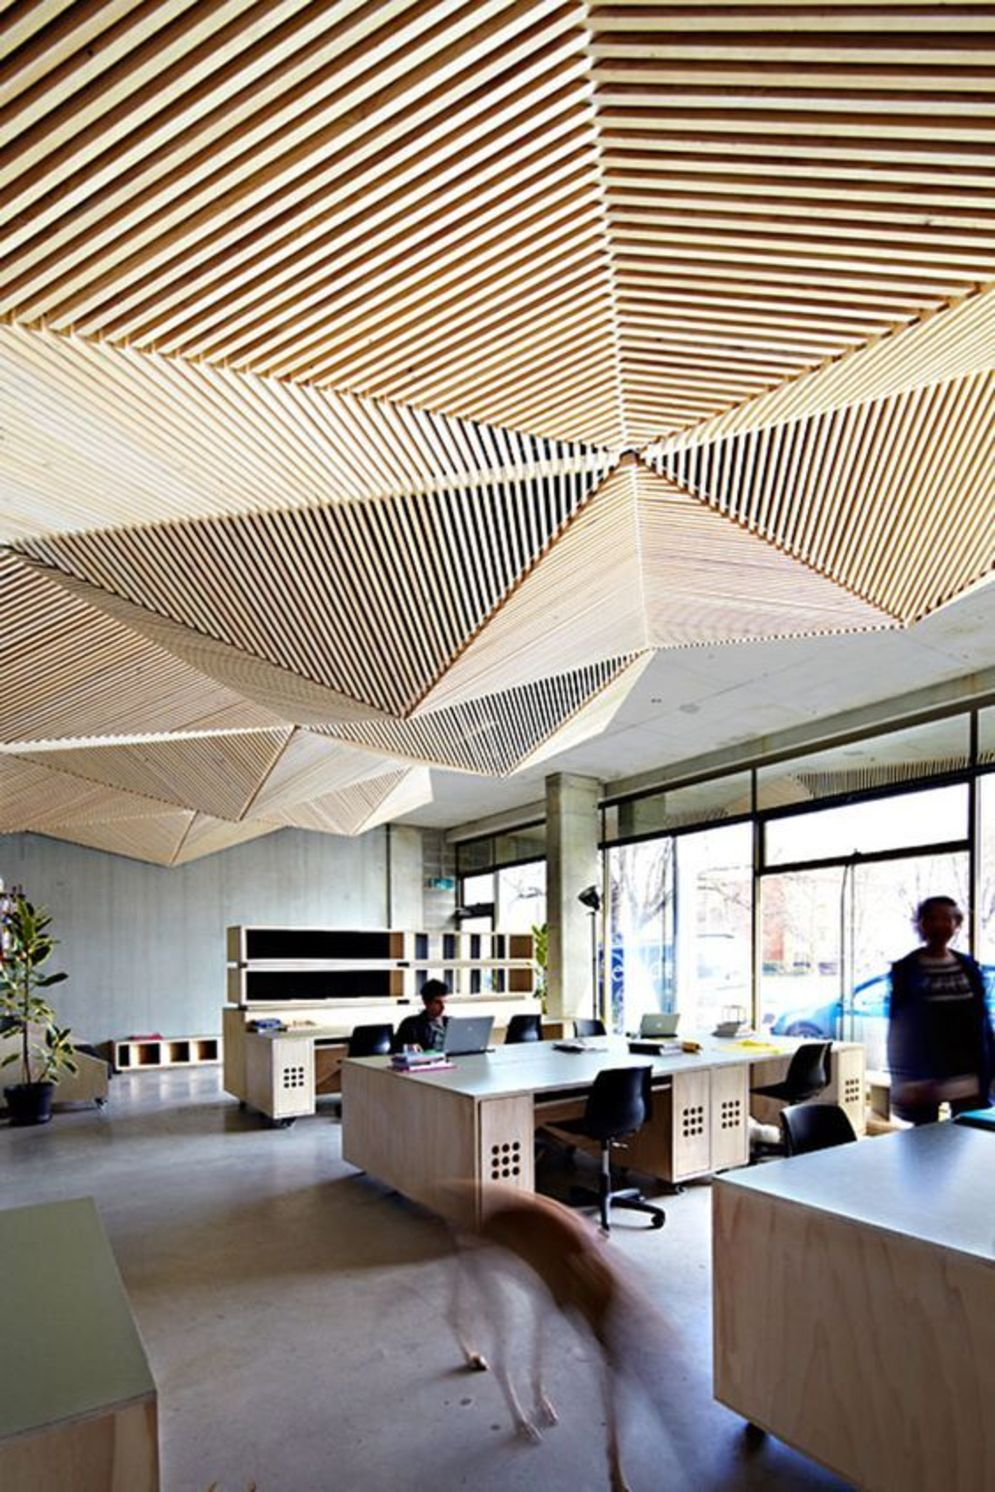 Amazing office interior ideas with unique and unconventional false ceiling designs Image 1